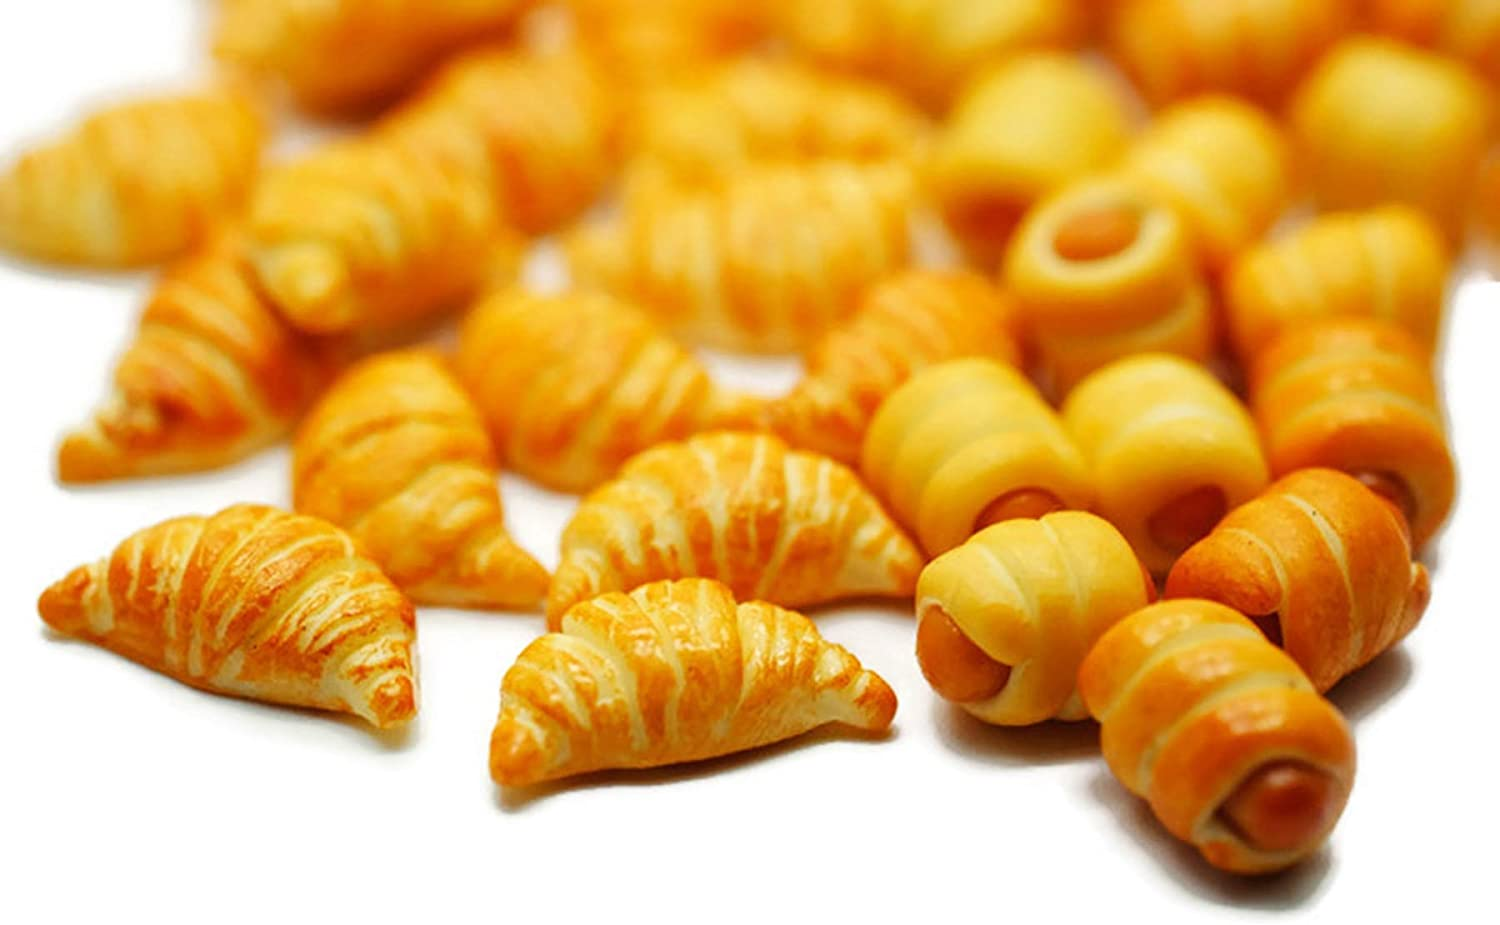 20 Psc Sausage Bread Rolls and Croissant Dollhouse Miniatures Food Kitchen by Cool Price